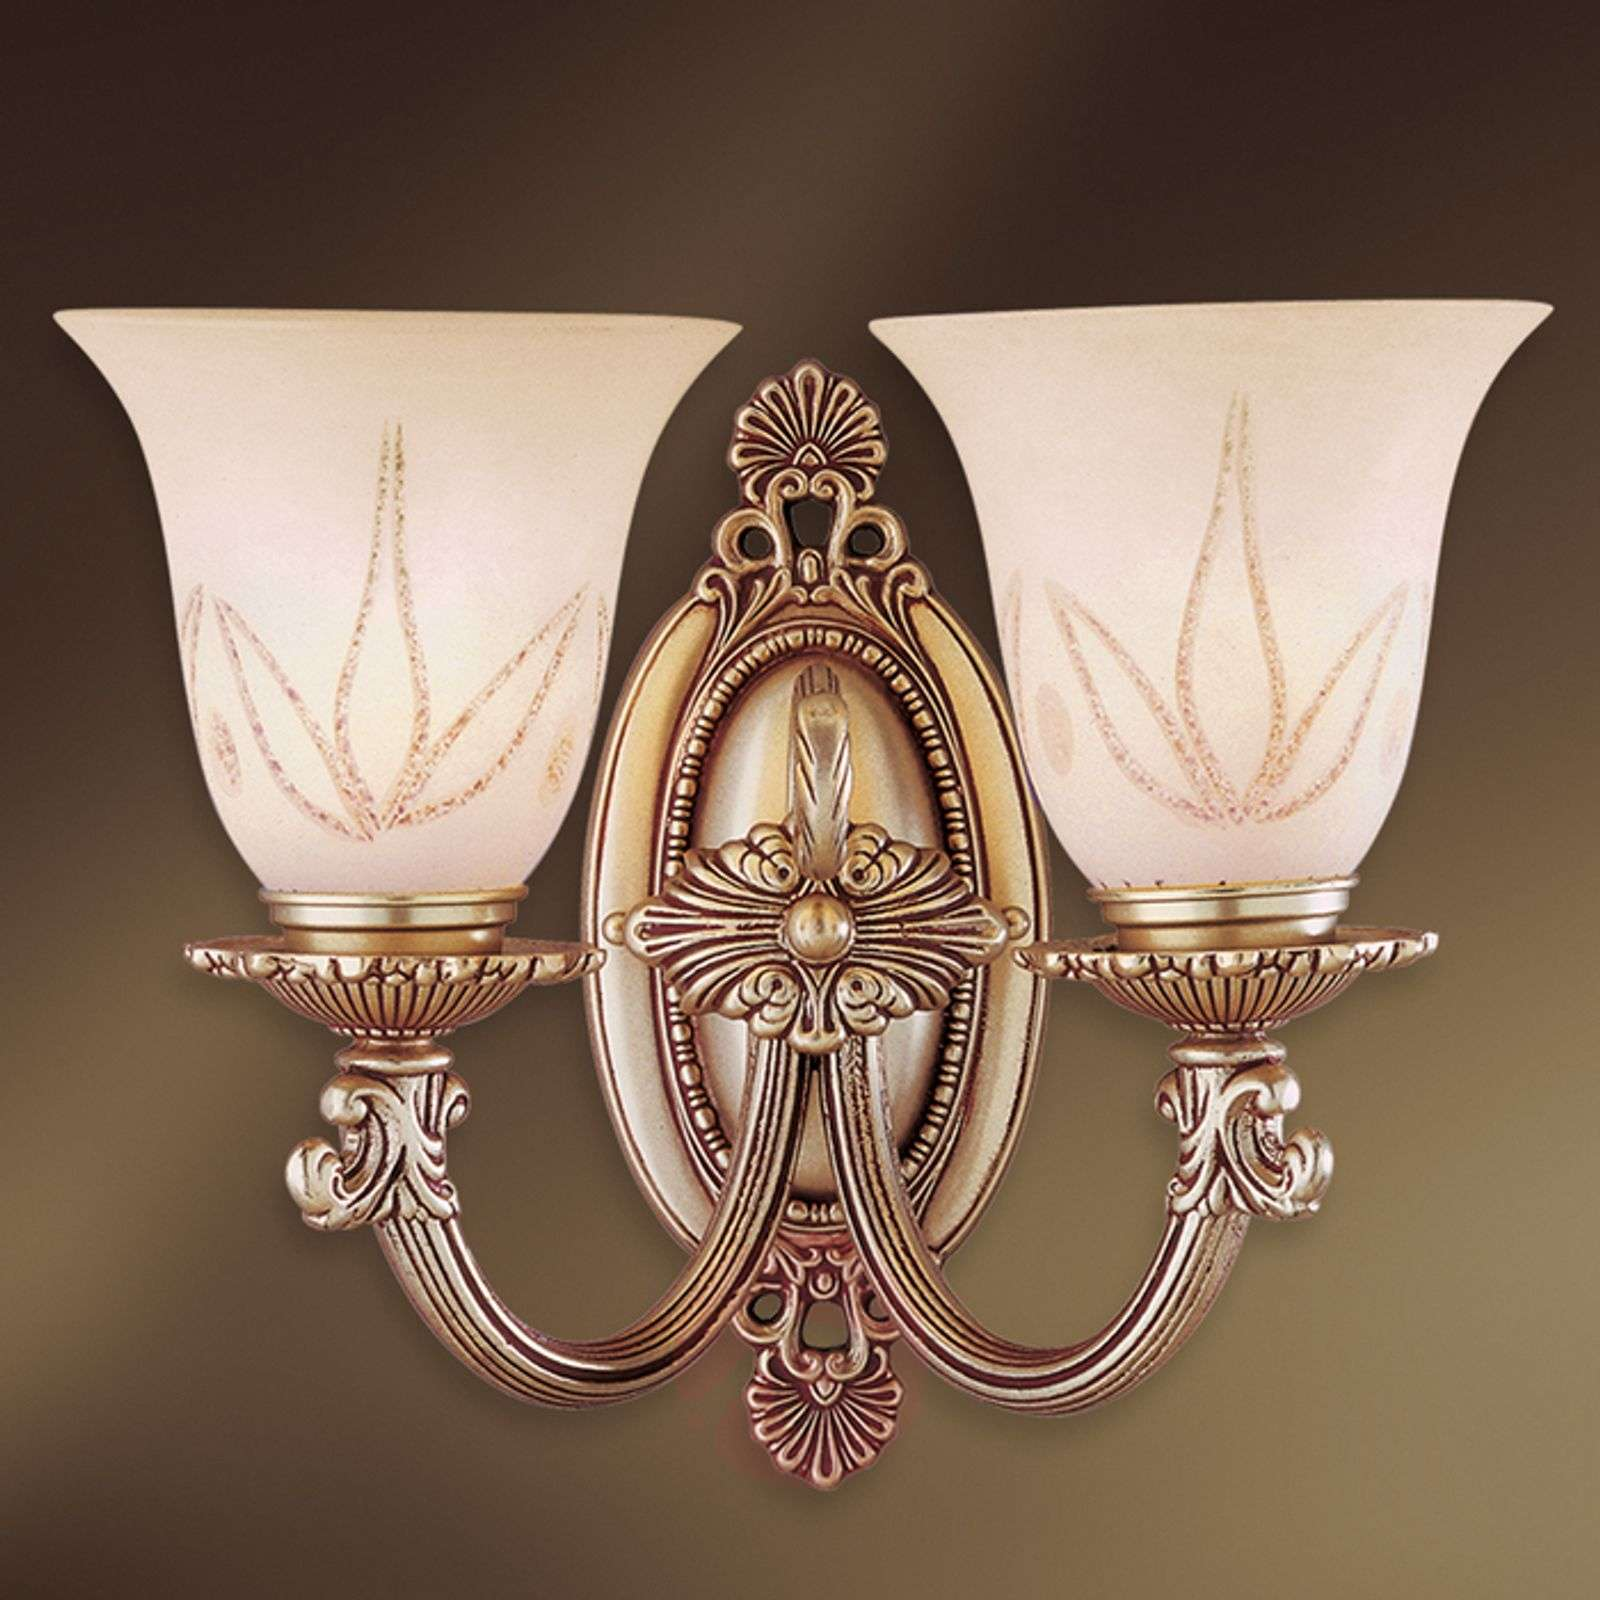 2-bulb wall lamp Estrella with glass lampshades-8023209-01